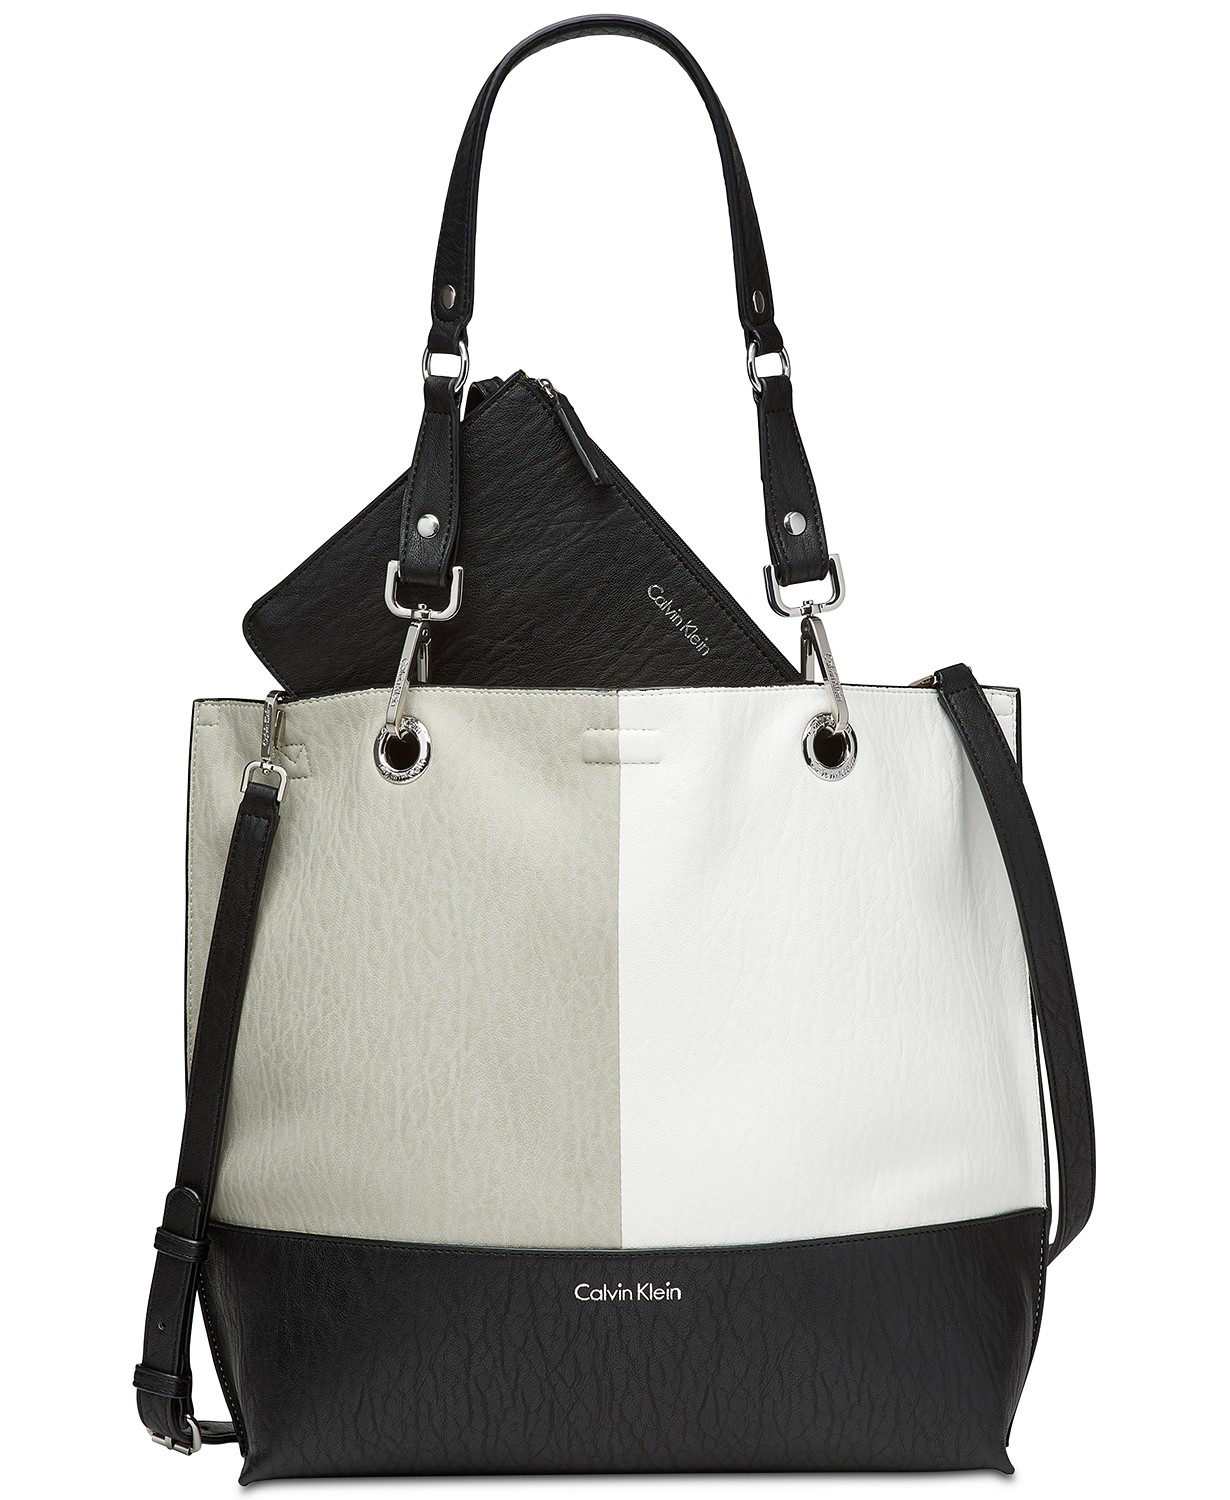 d16cede53 Calvin Klein Sonoma Reversible Novelty Tote with Pouch for $88.80 + Free  Shipping! (Reg. Price $148.00)